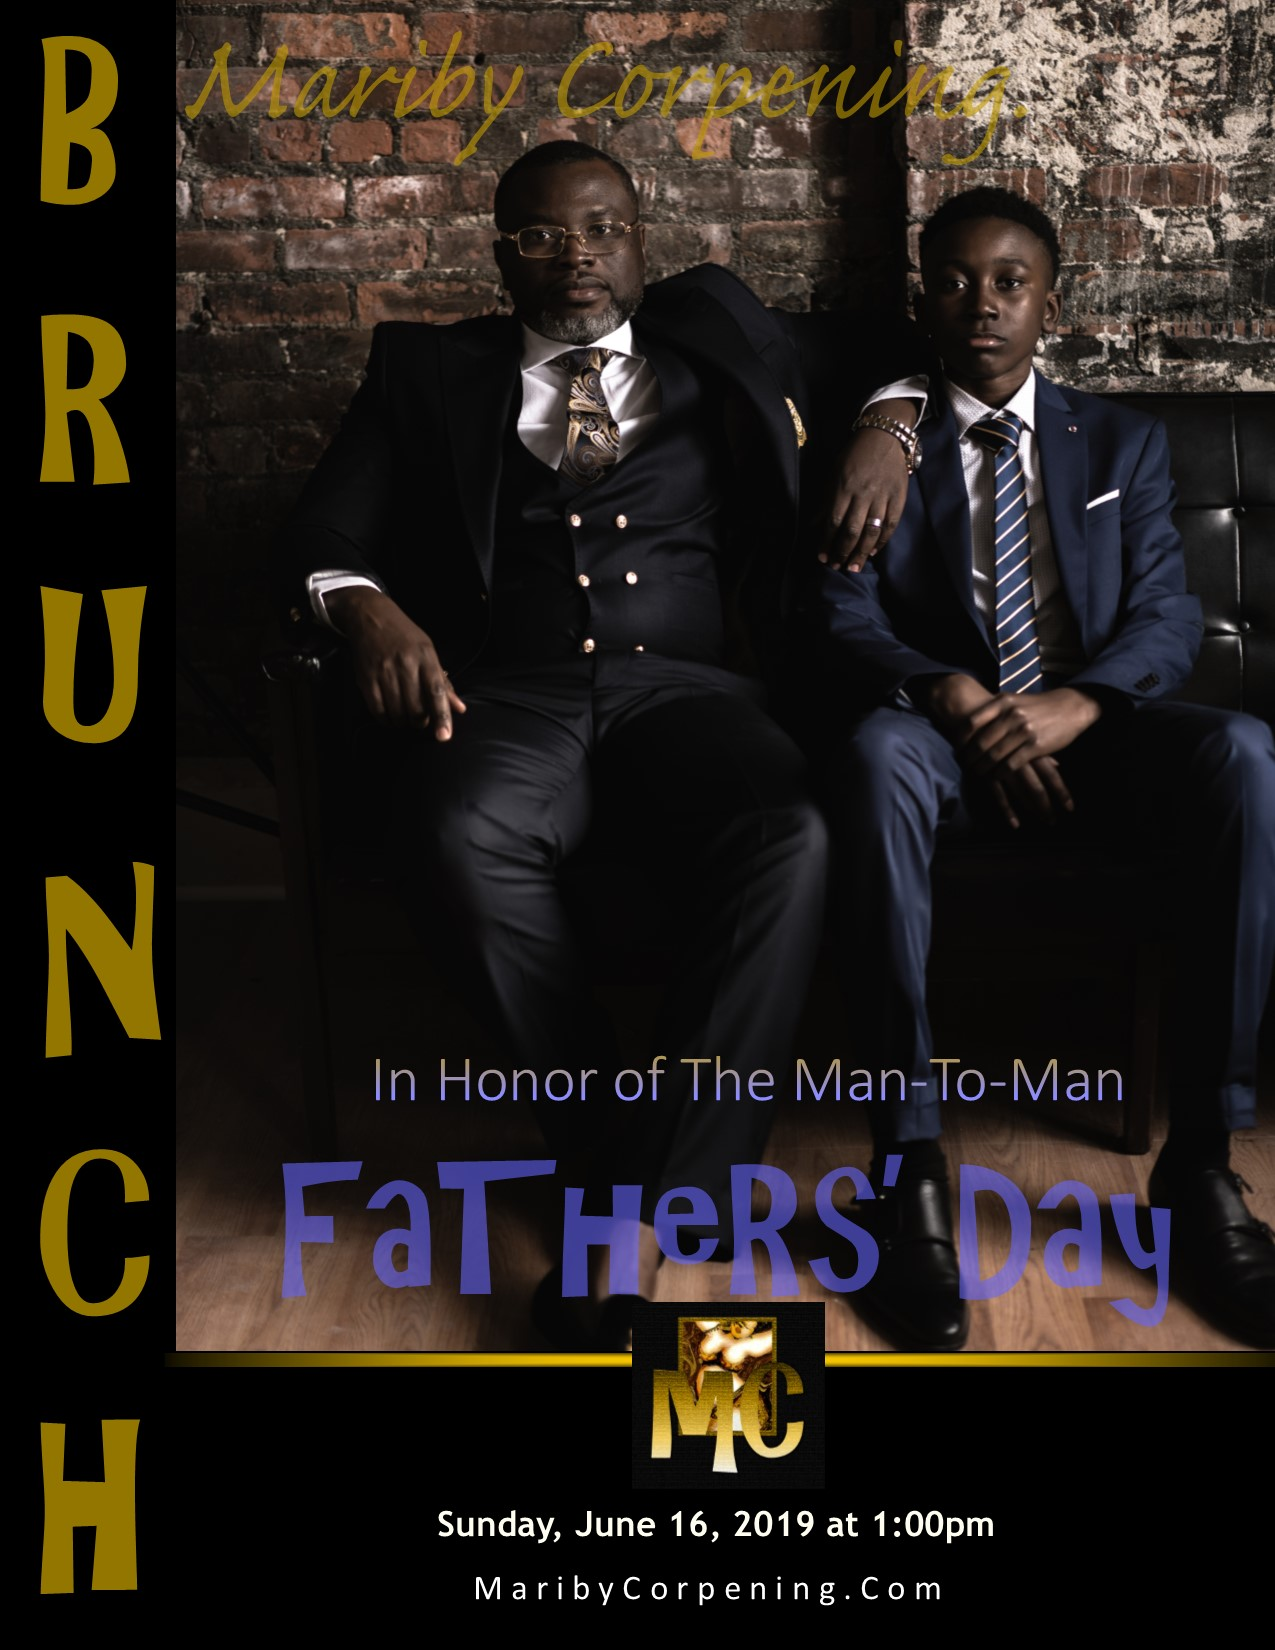 Flyer - Mariby Corpenings Fathers Day Brunch 2019.jpg